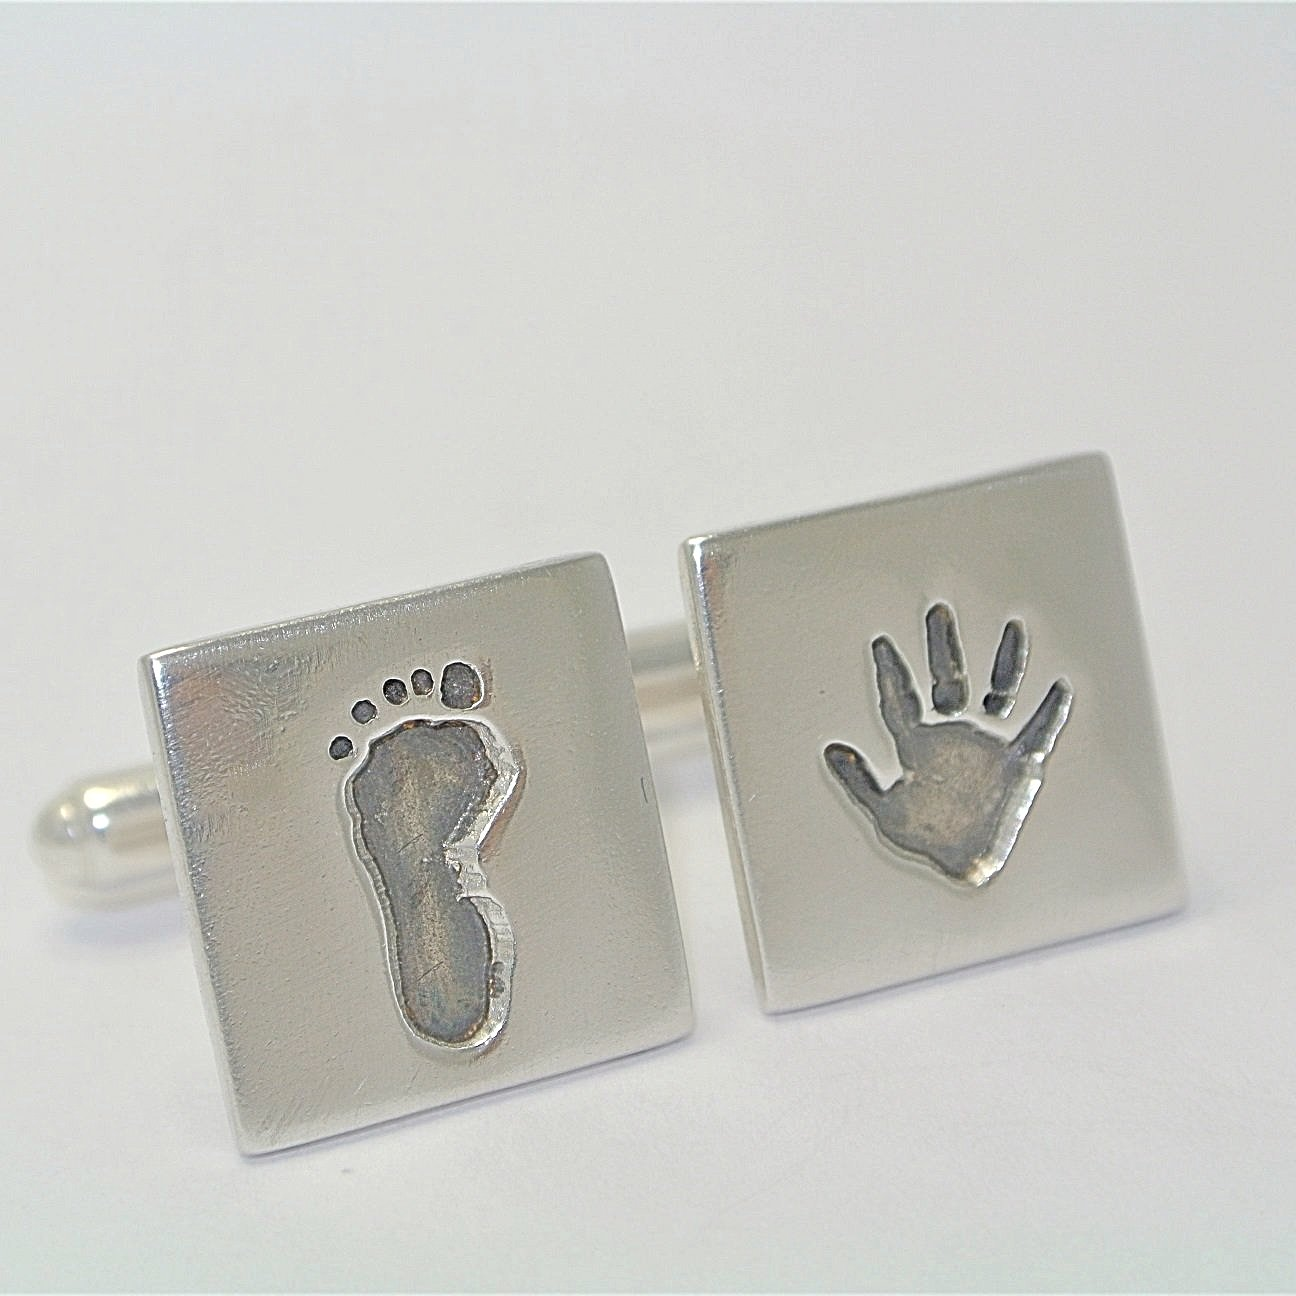 Handprint and Footprint Cufflinks Sterling Silver Keepsake Jewellery